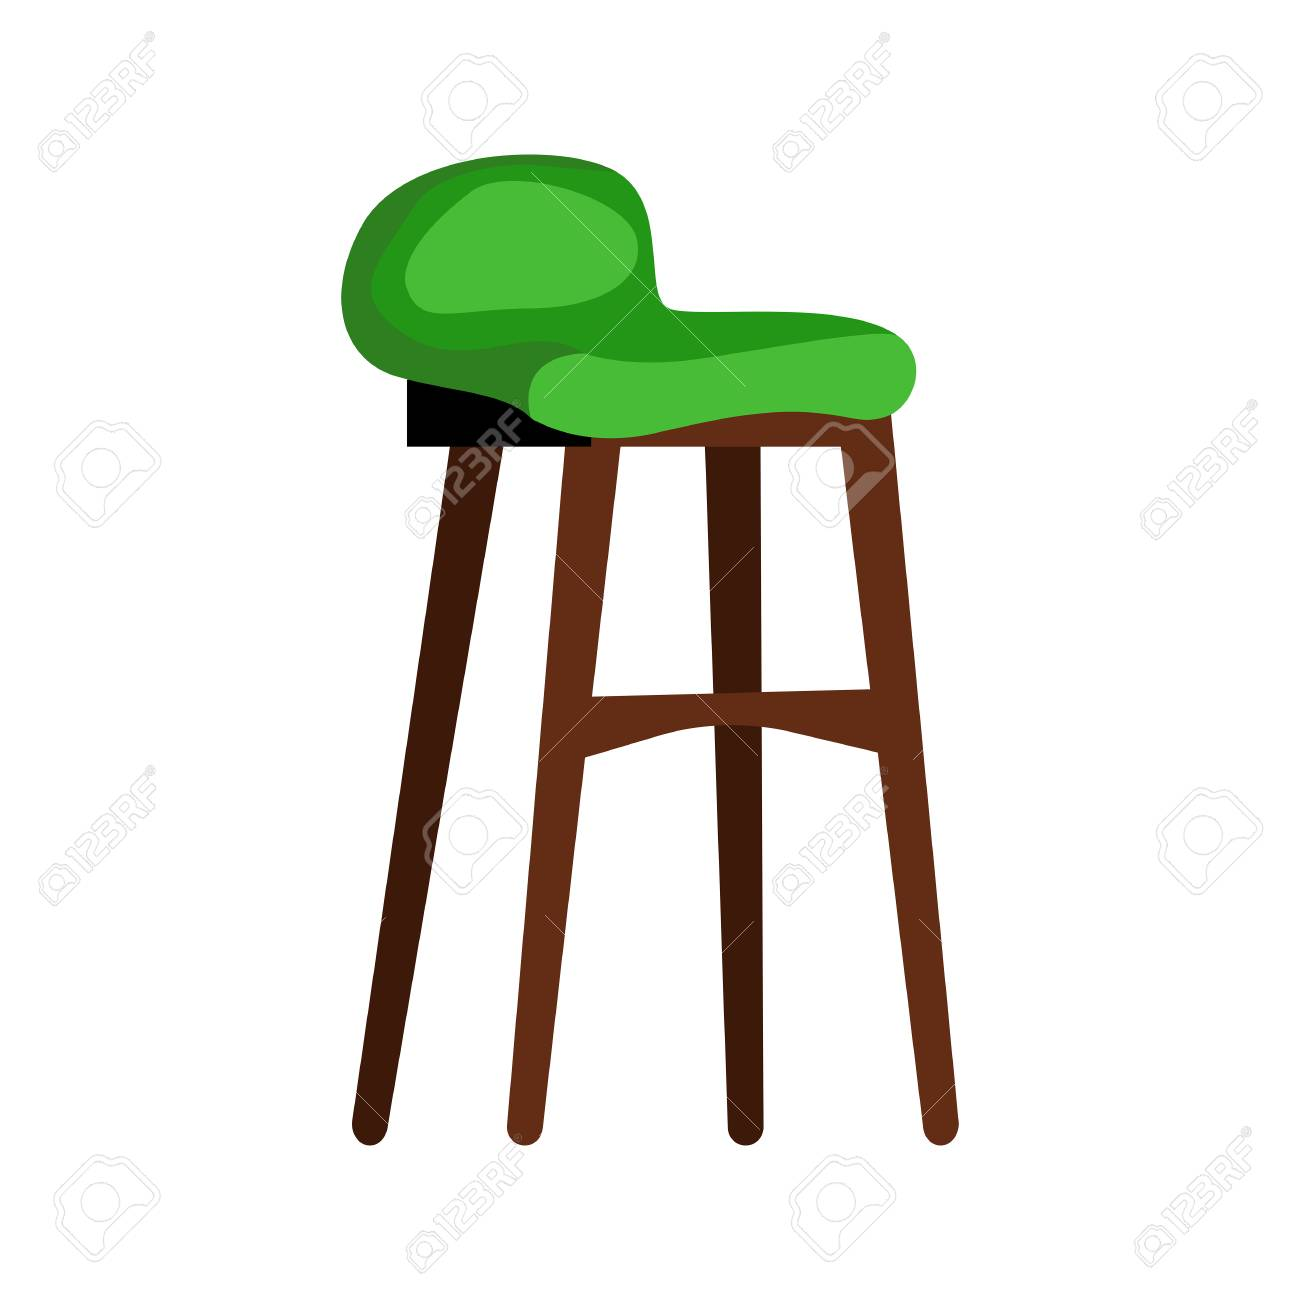 Terrific Modern Green Padded Stool Flat Icon Living Room Lounge Chair Lamtechconsult Wood Chair Design Ideas Lamtechconsultcom